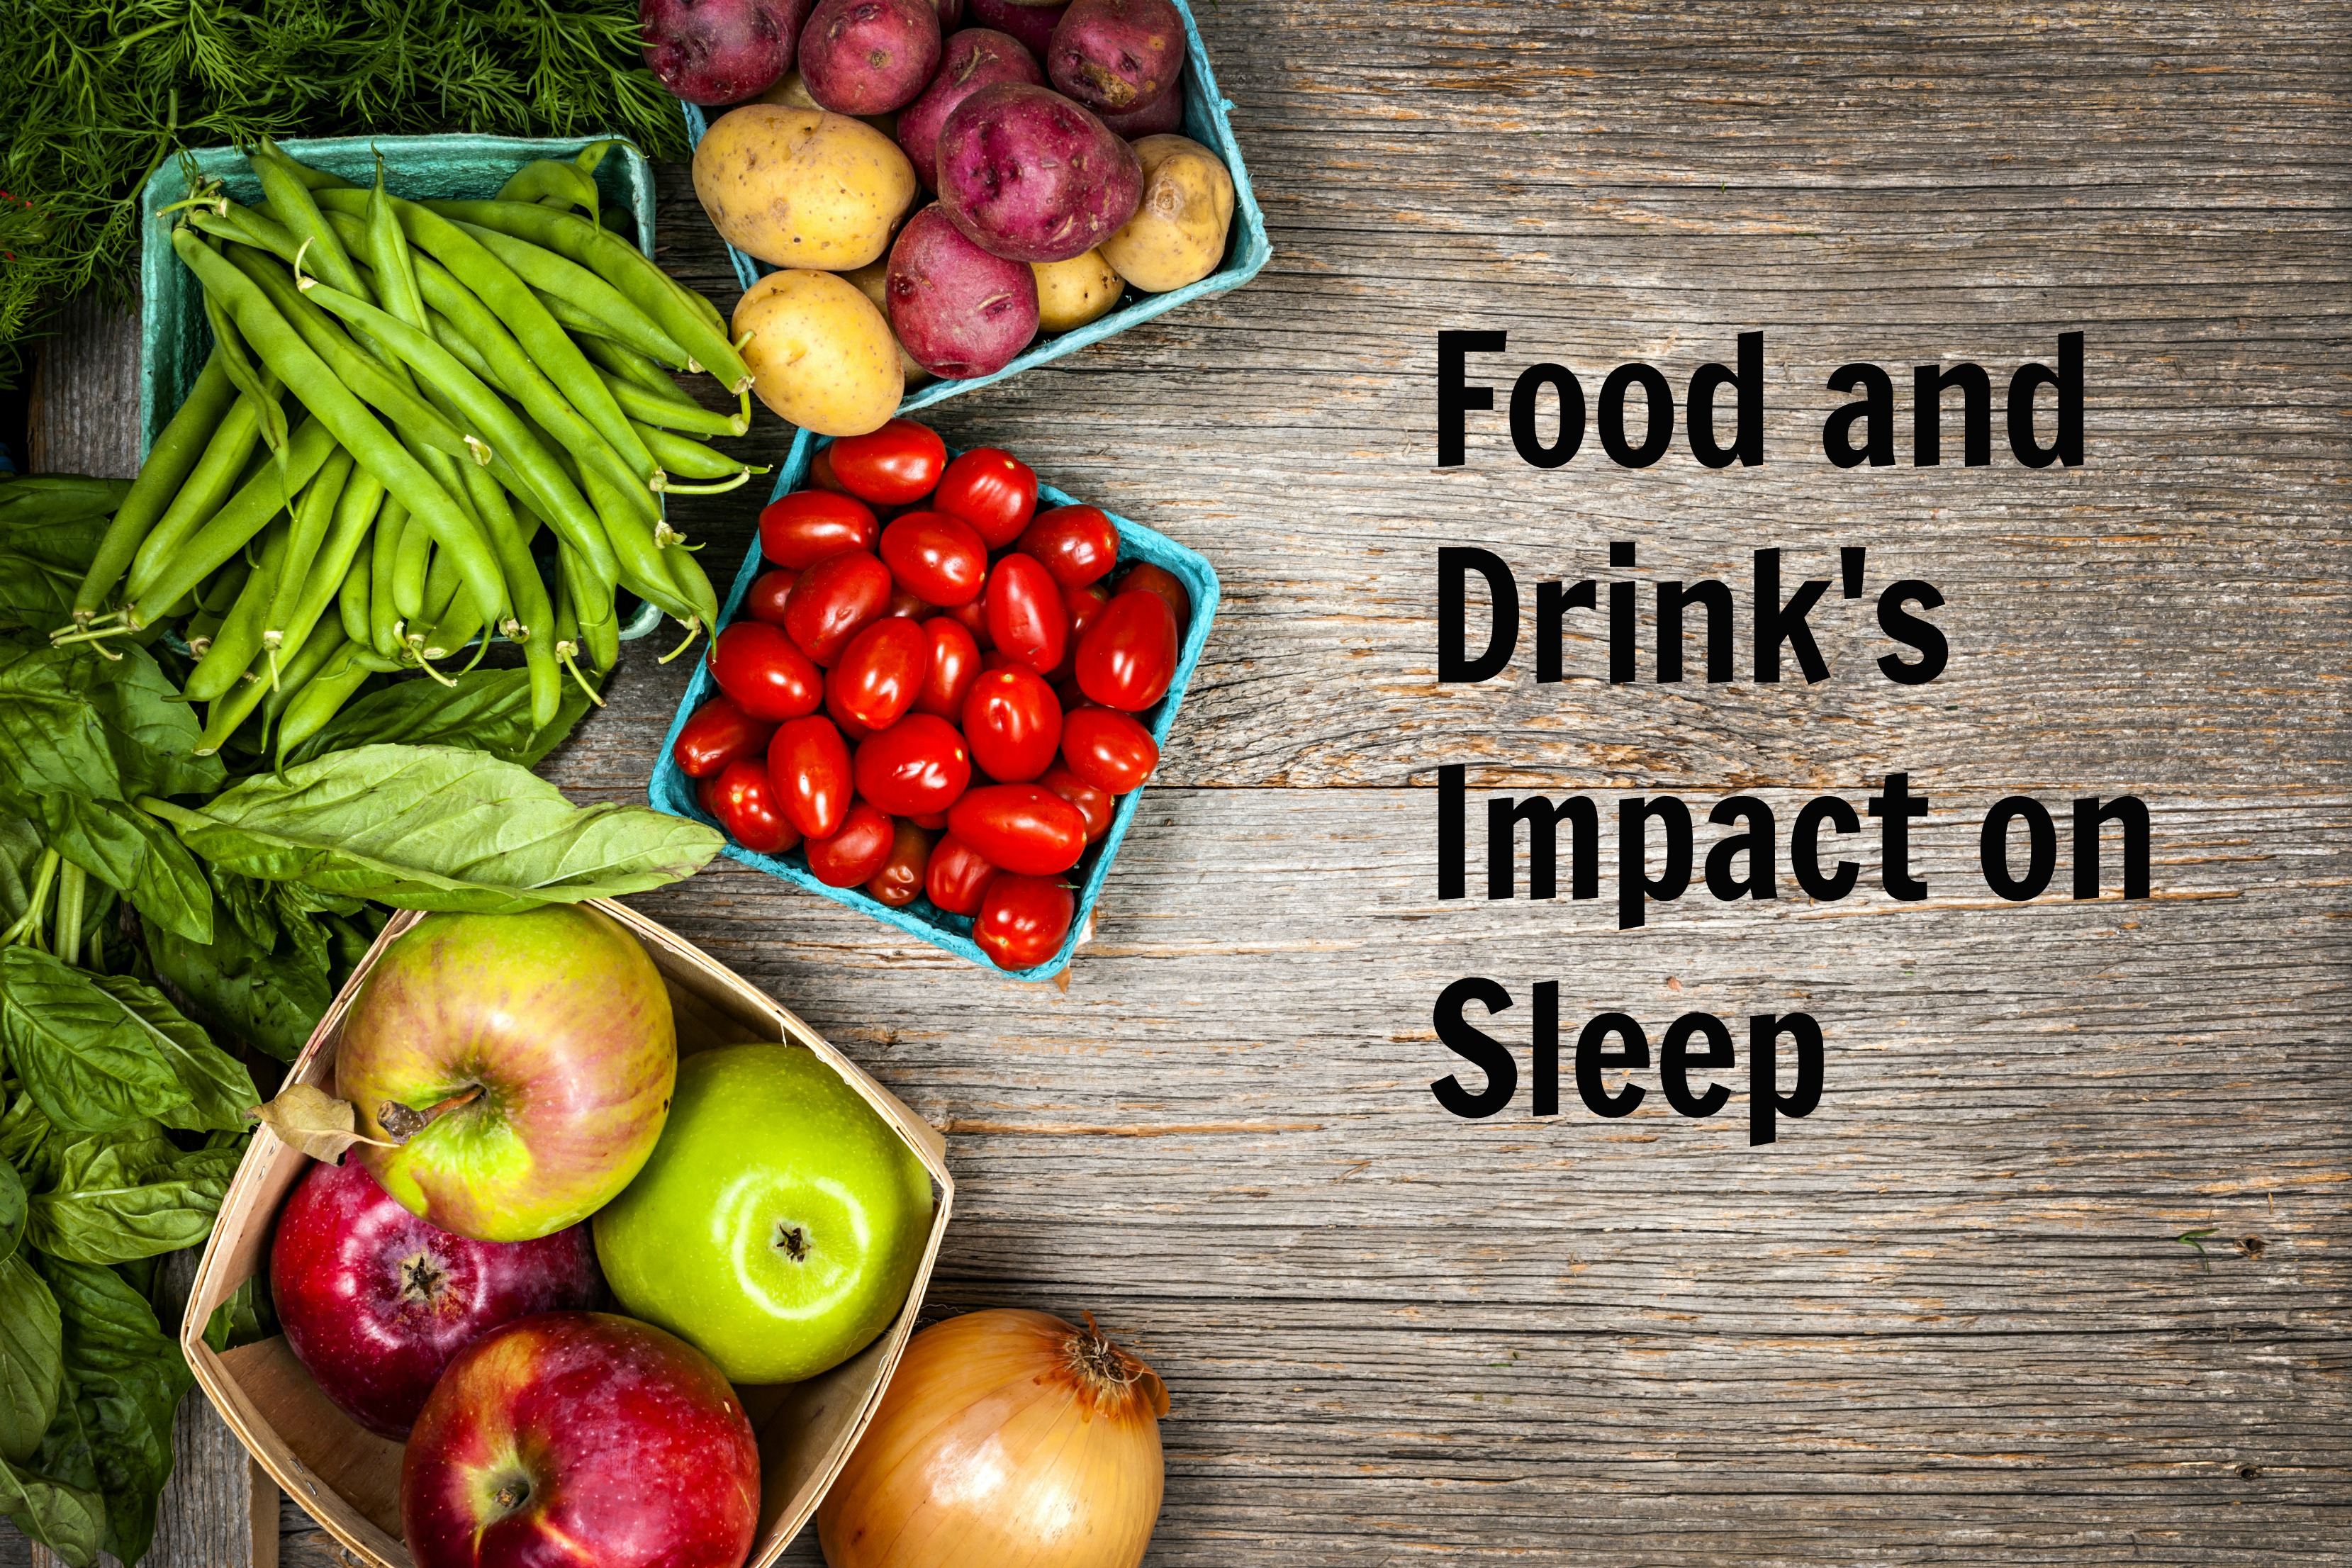 sleep food impact drink drinks foods quality healthy certain variety known ways while help